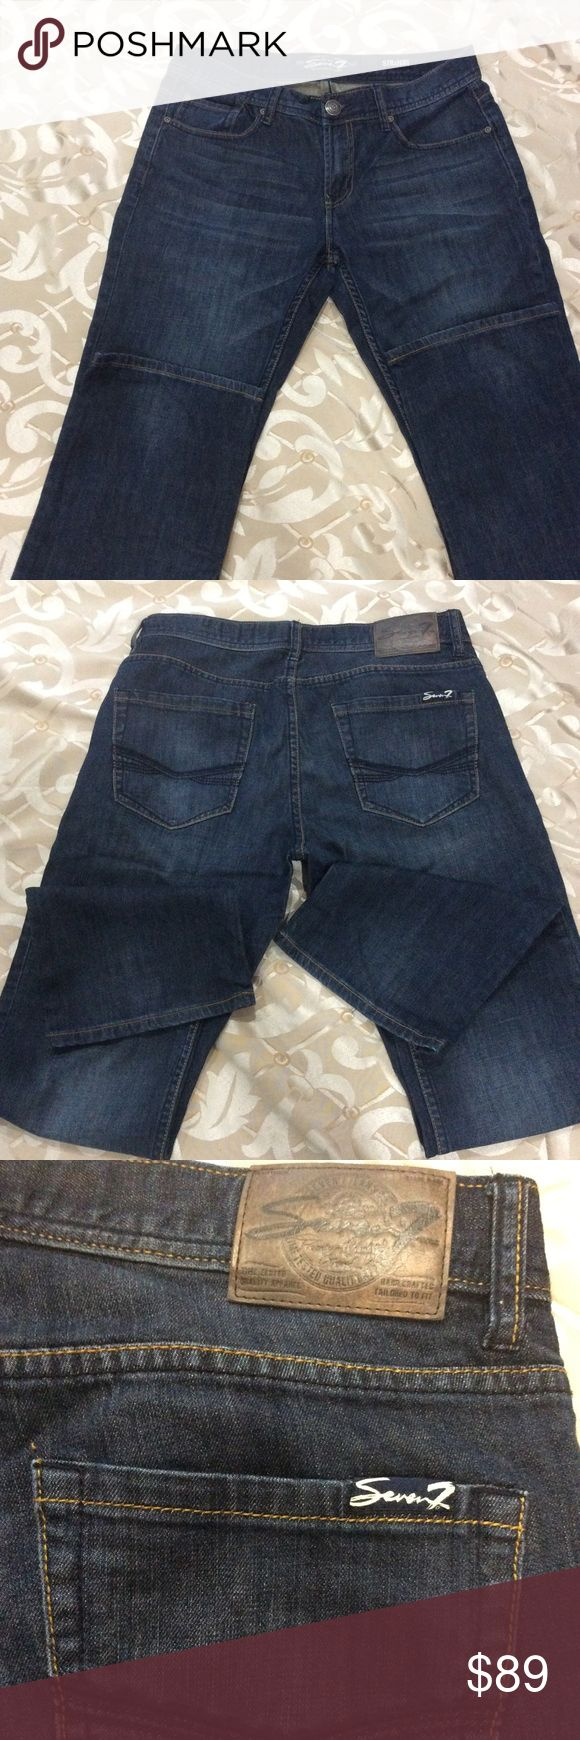 SEVEN7 MENS DARK JEANS size 32/34 SEVEN7 mens dark wash jeans, never worn great condition. 99% cotton 1% spandex.  Smoke and pet free home. Seven7 Jeans Straight